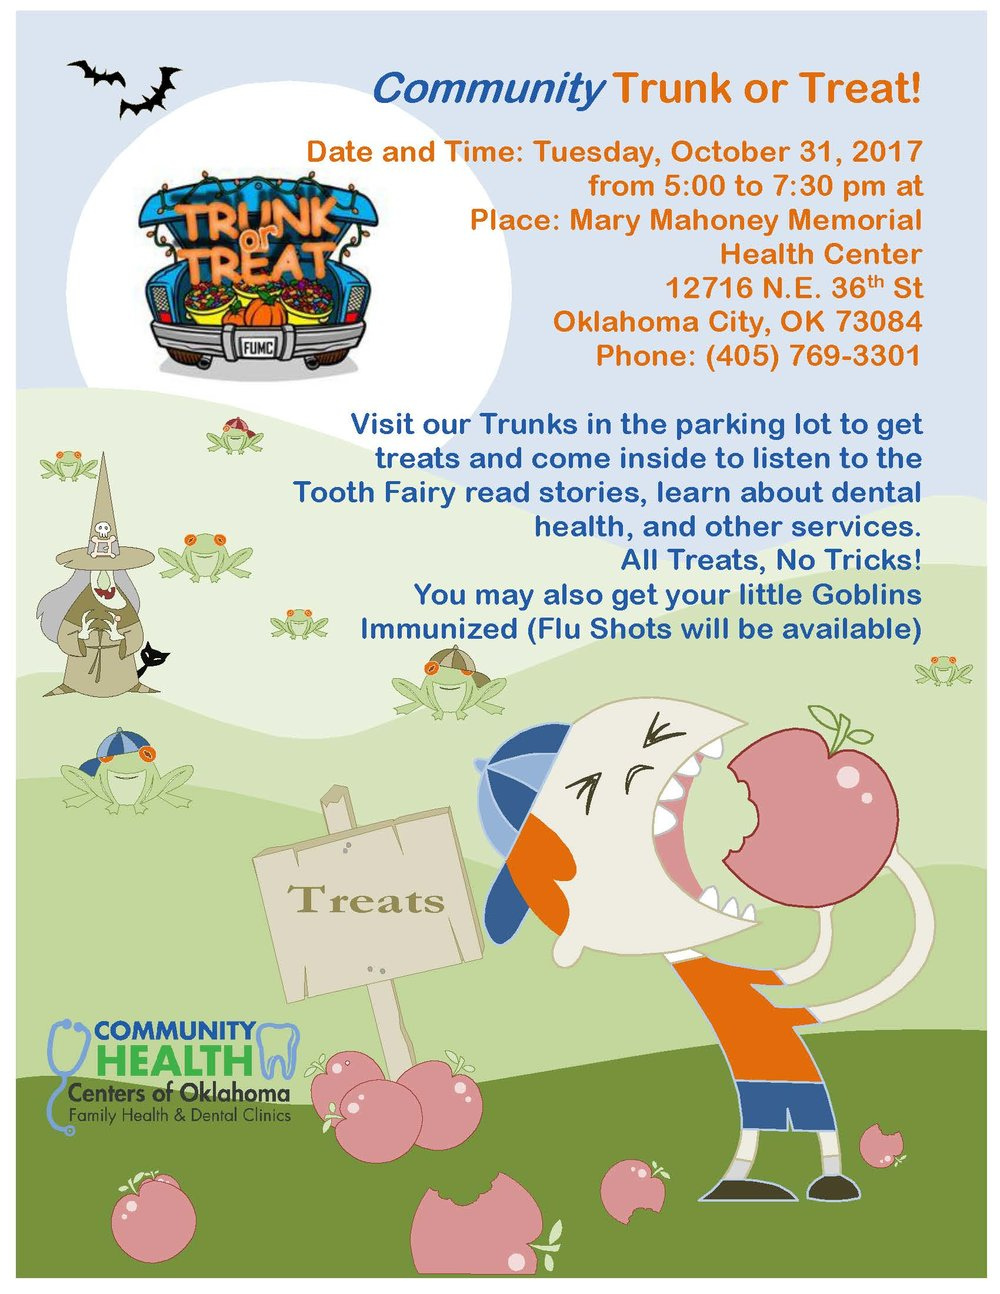 Trunk or Treat Flyer 2017 blue.jpg